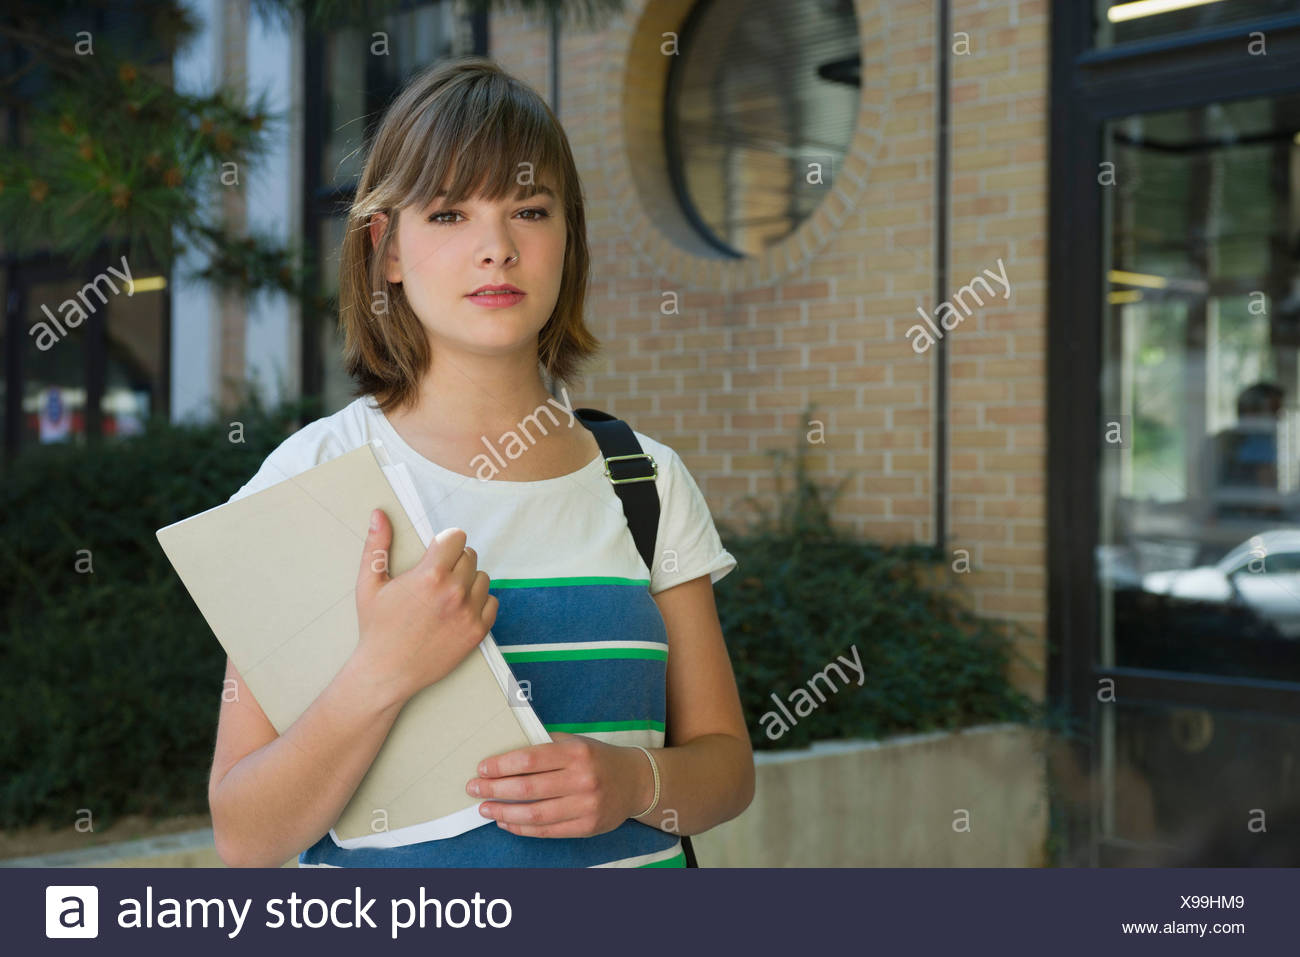 Female college student, portrait - Stock Image